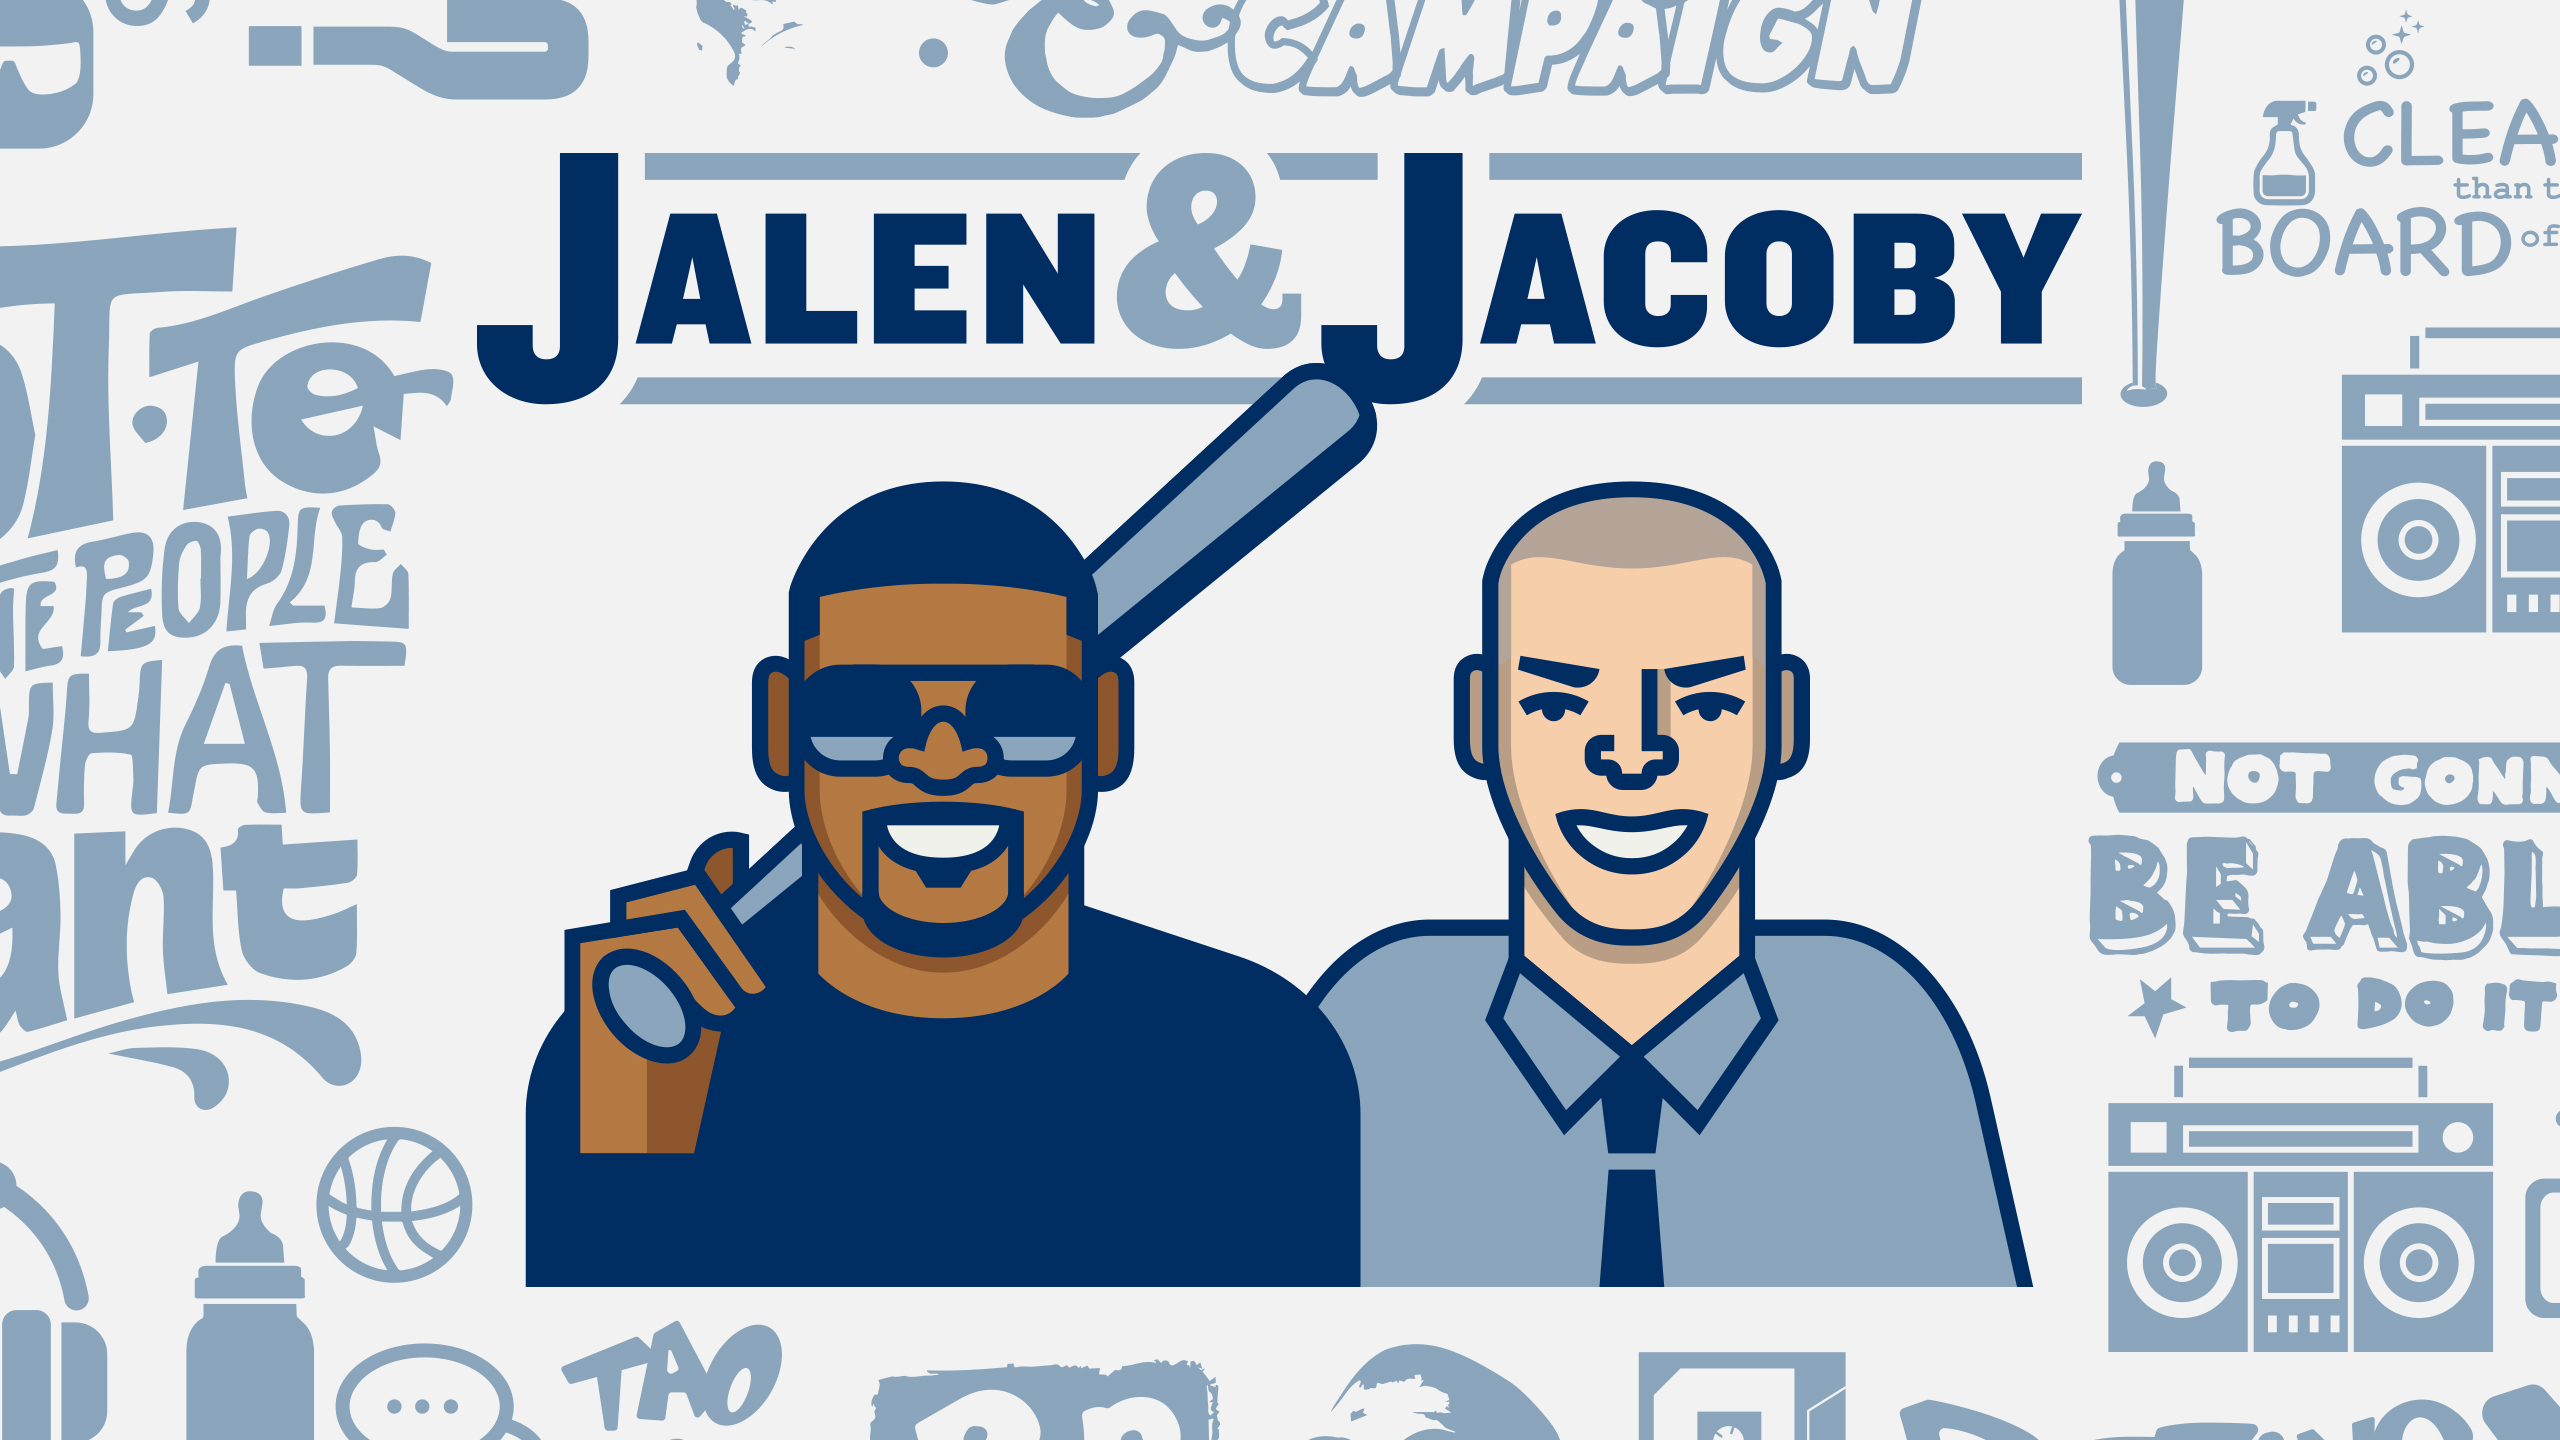 Tue, 2/19 - Jalen & Jacoby